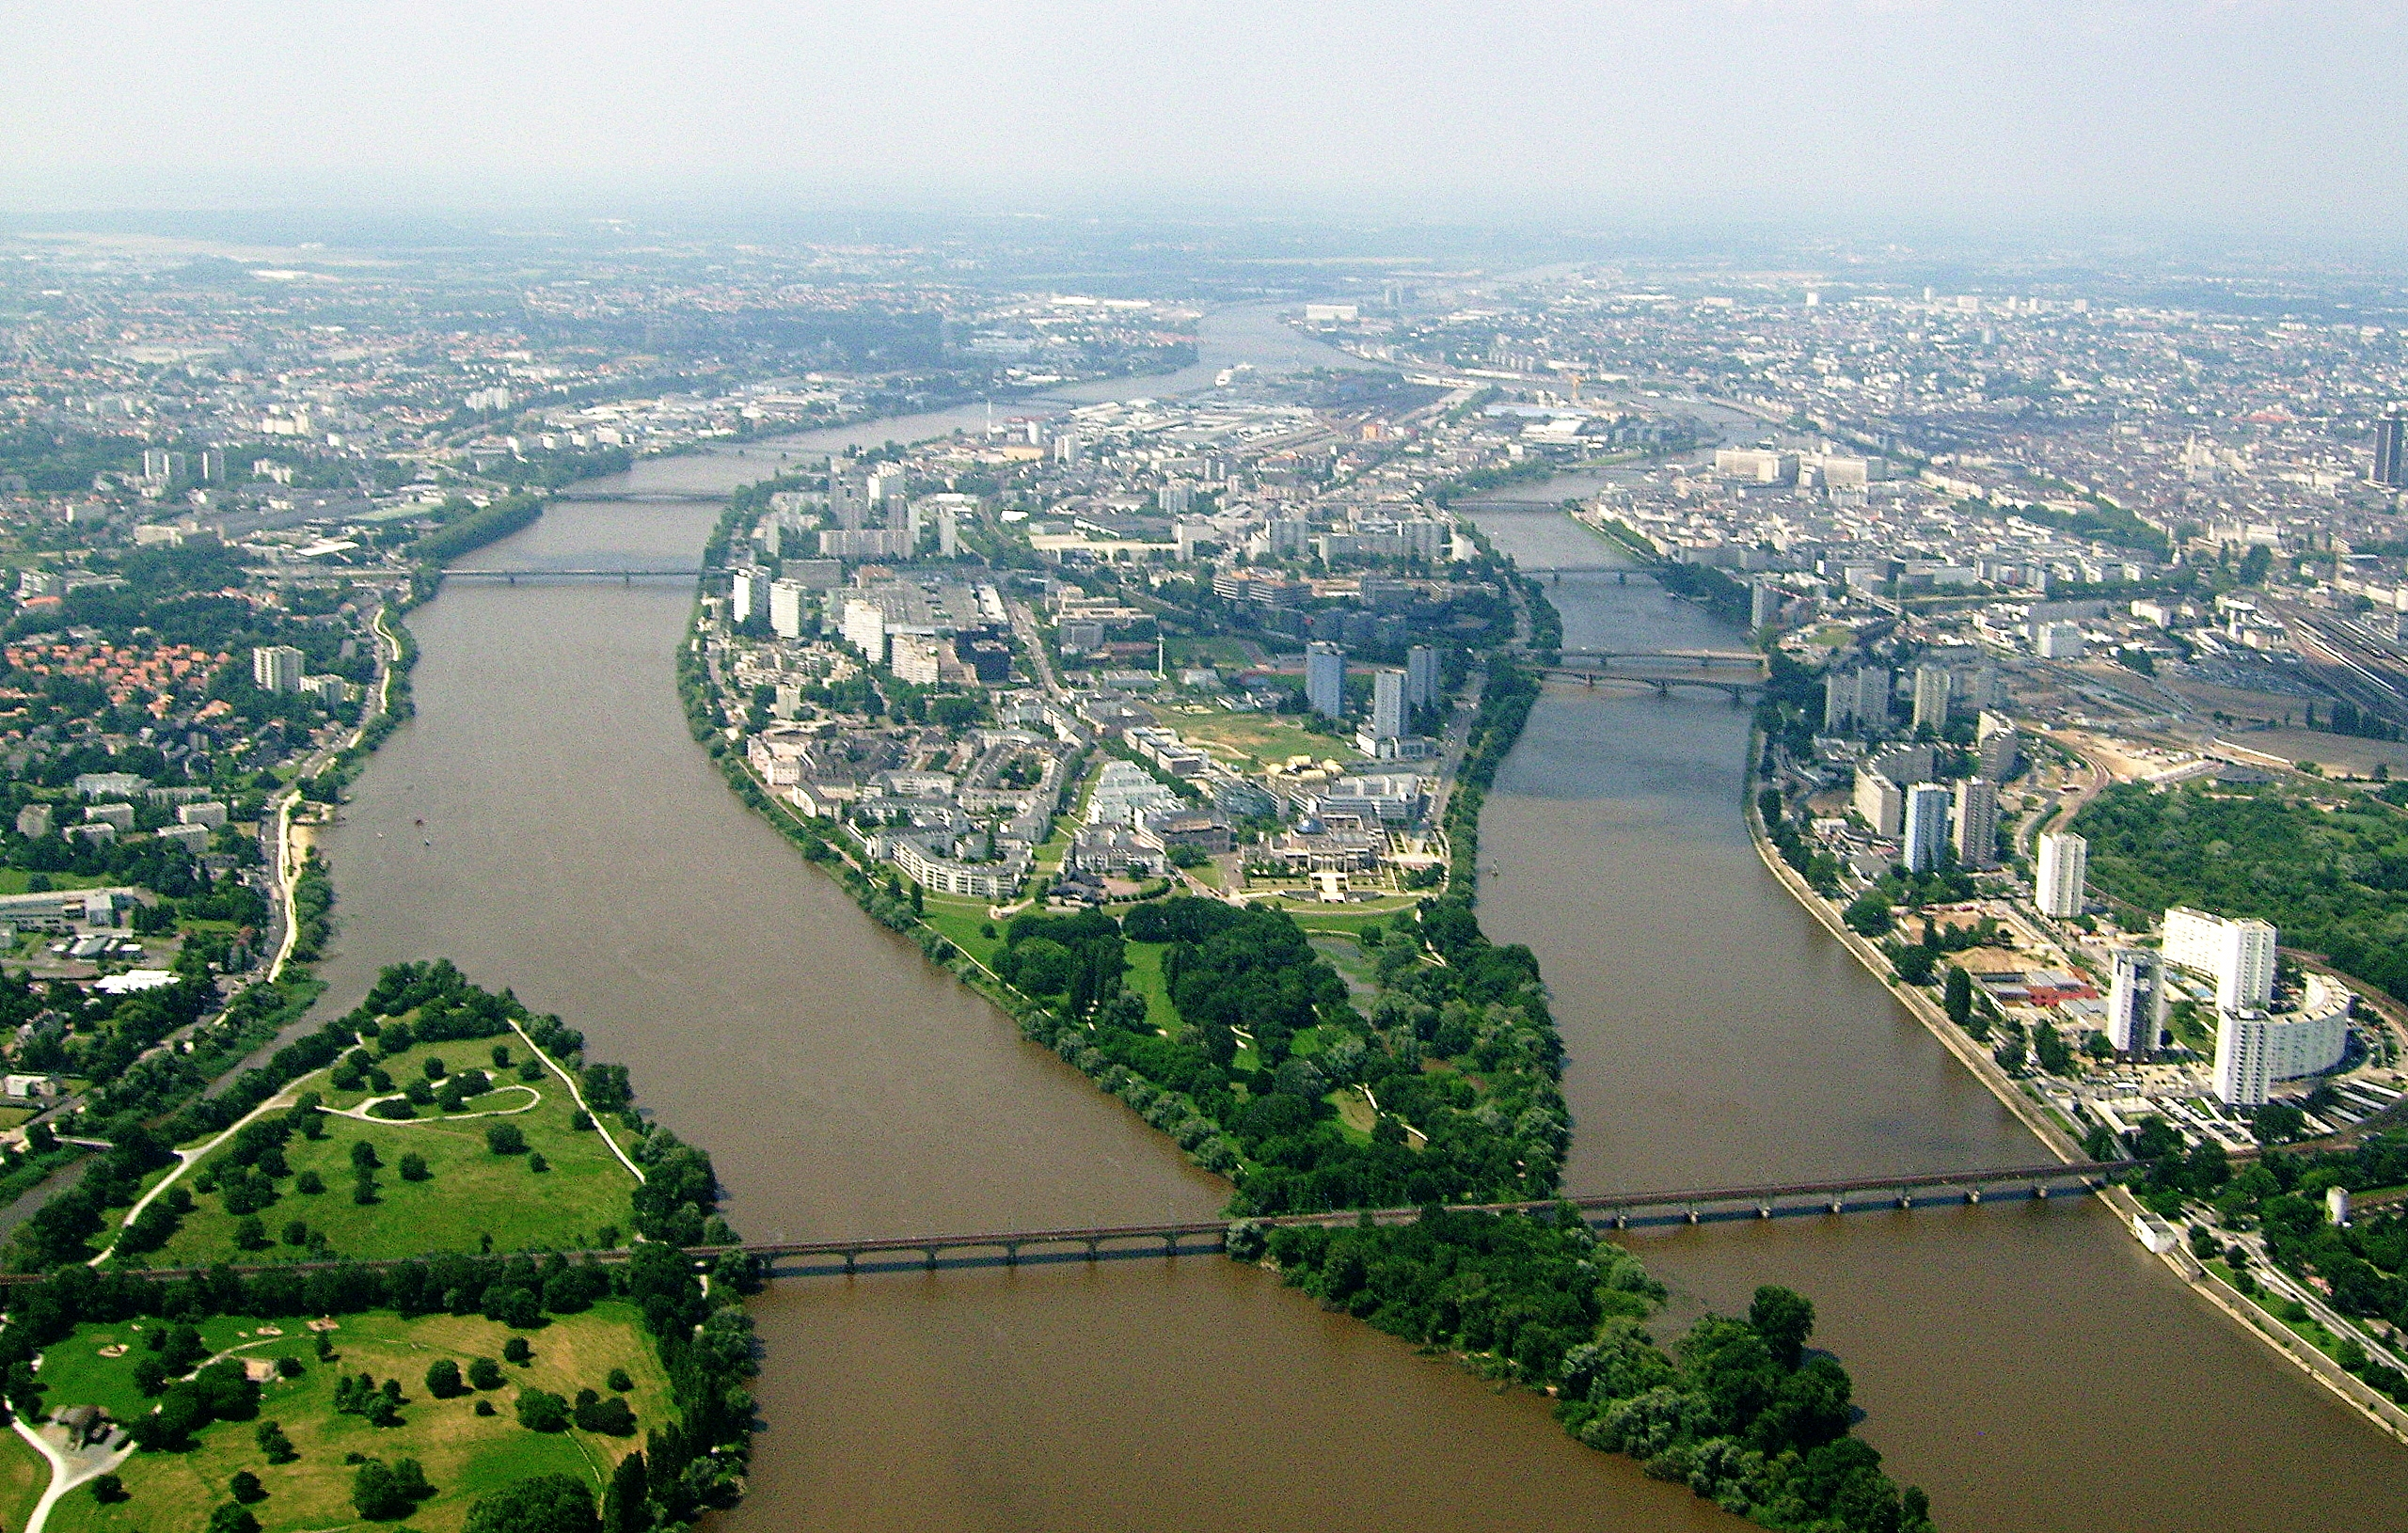 NANTES - Wikipedia, the free encyclopedia